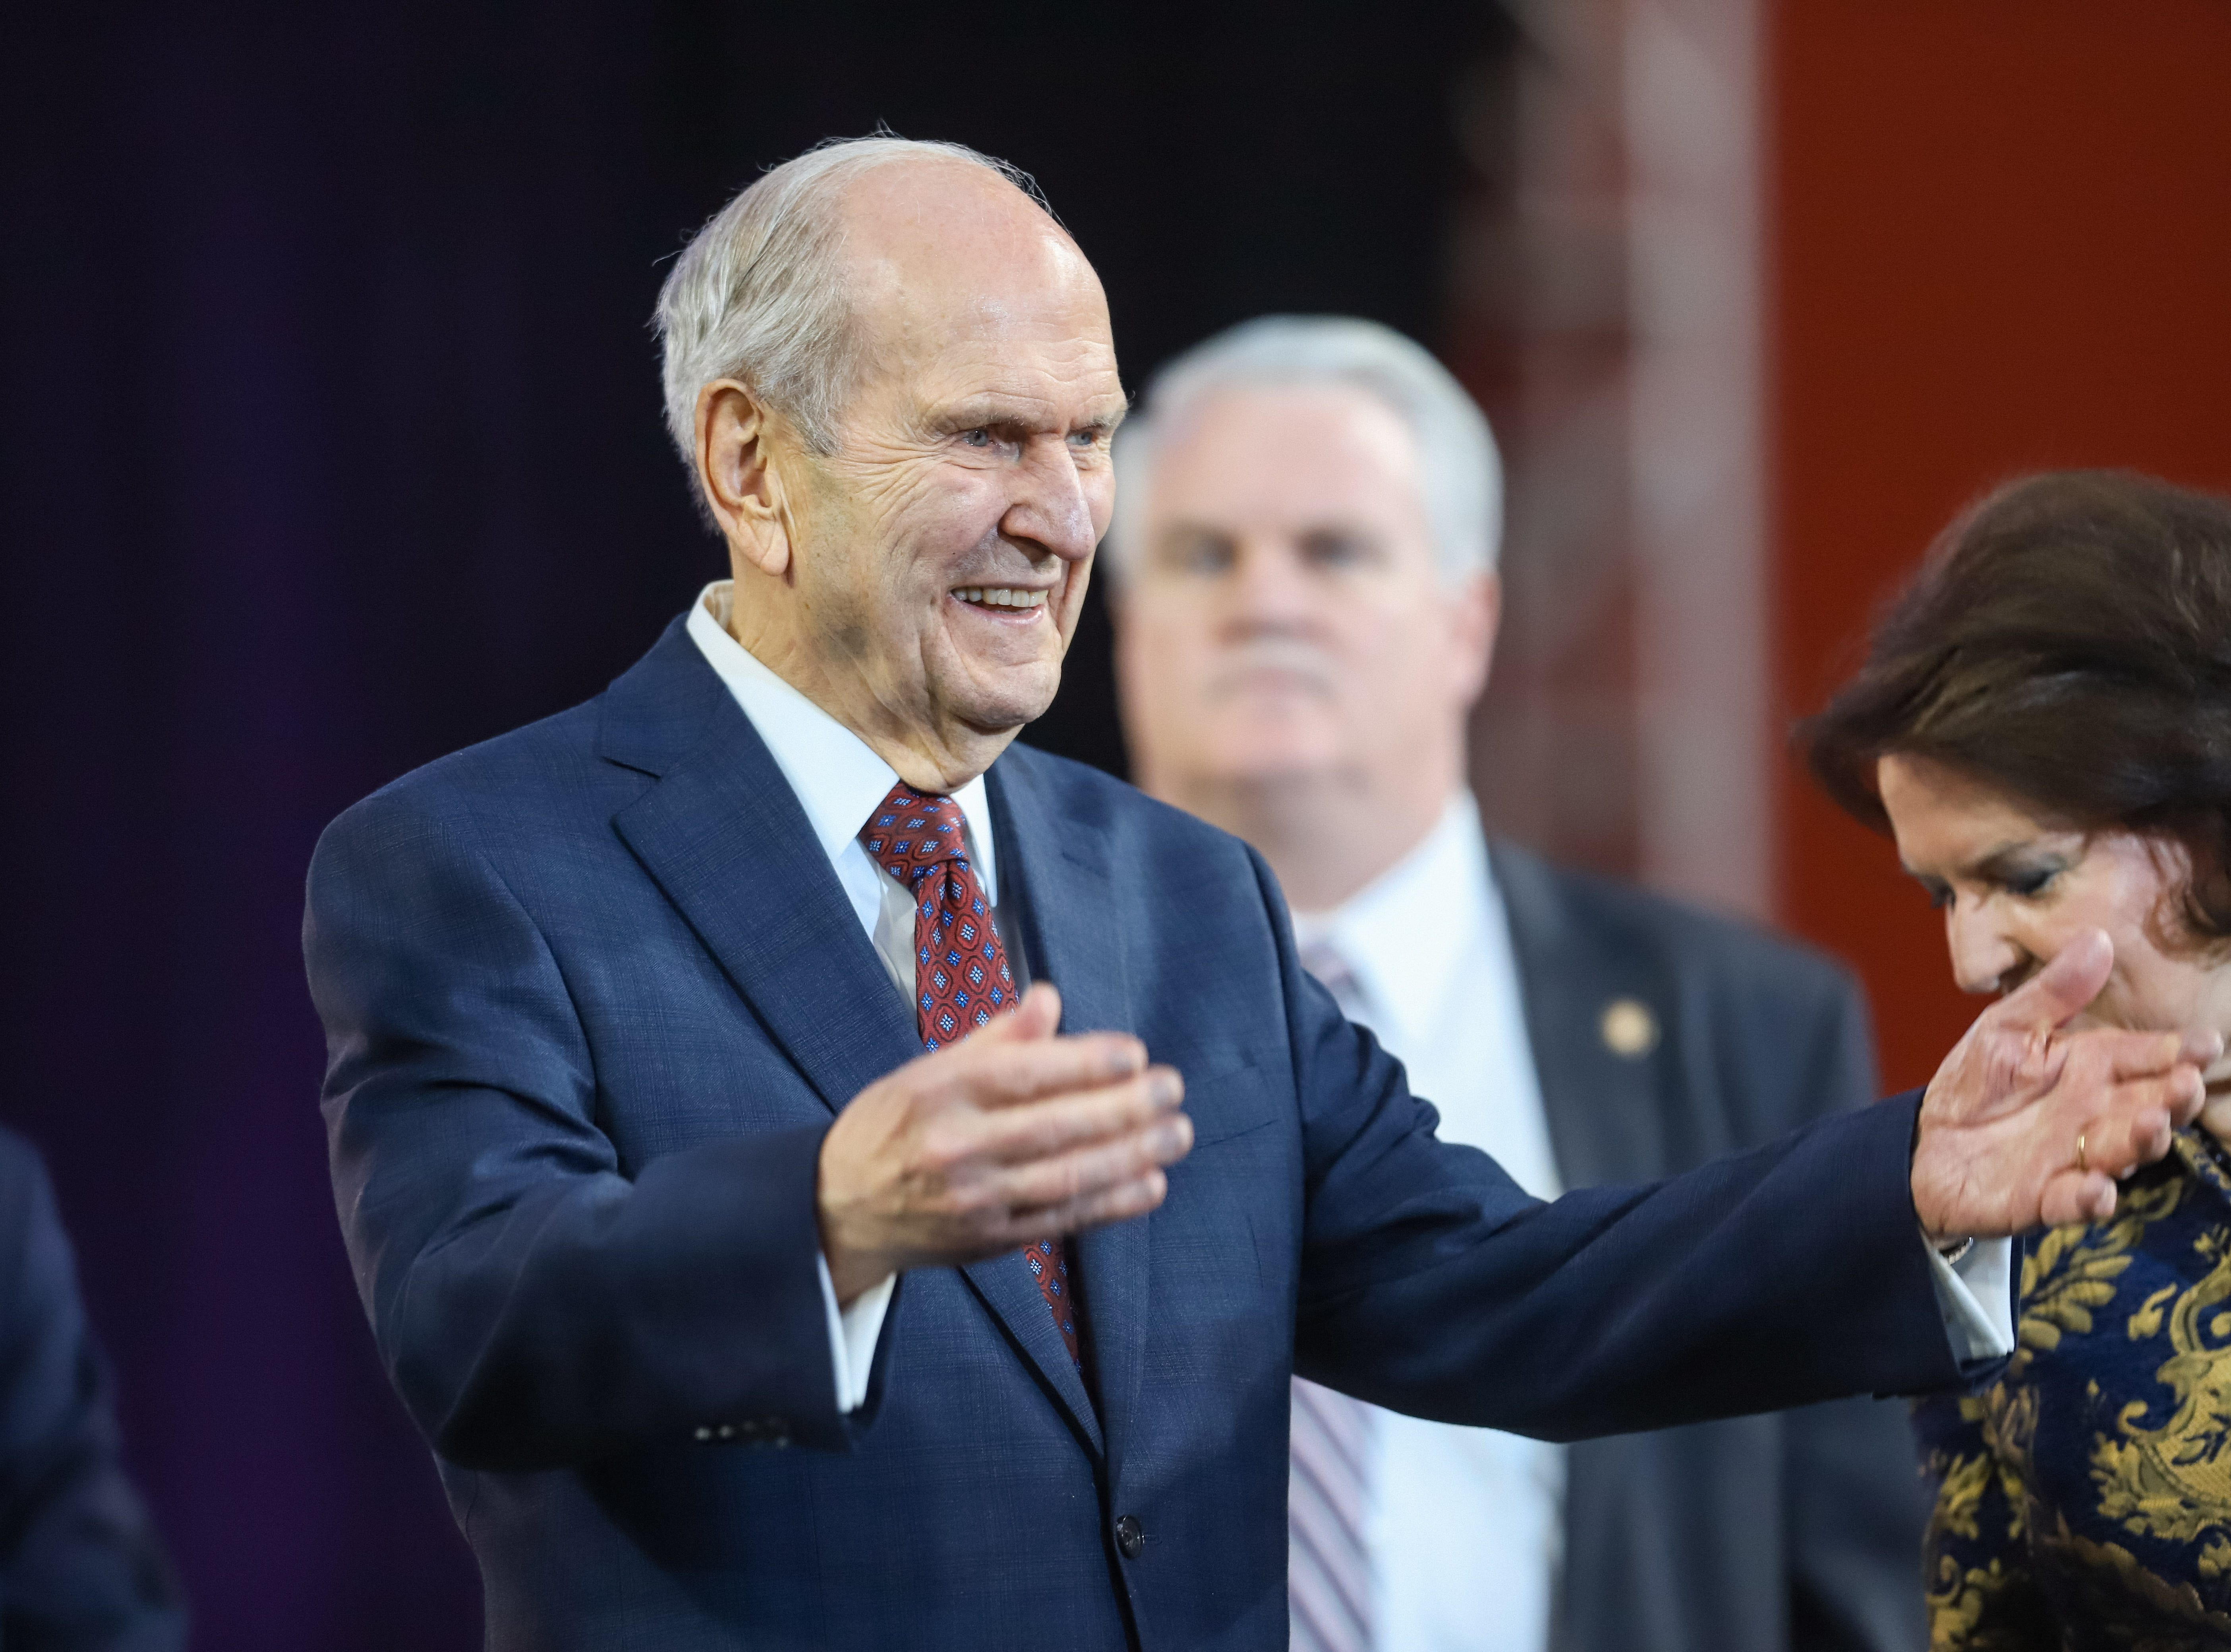 President Russell M. Nelson, the prophet of the Church of Jesus Christ of Latter-day Saints, waves to nearly 70,000 people at State Farm Stadium in Glendale, Arizona on Sunday, Feb. 10, 2019.